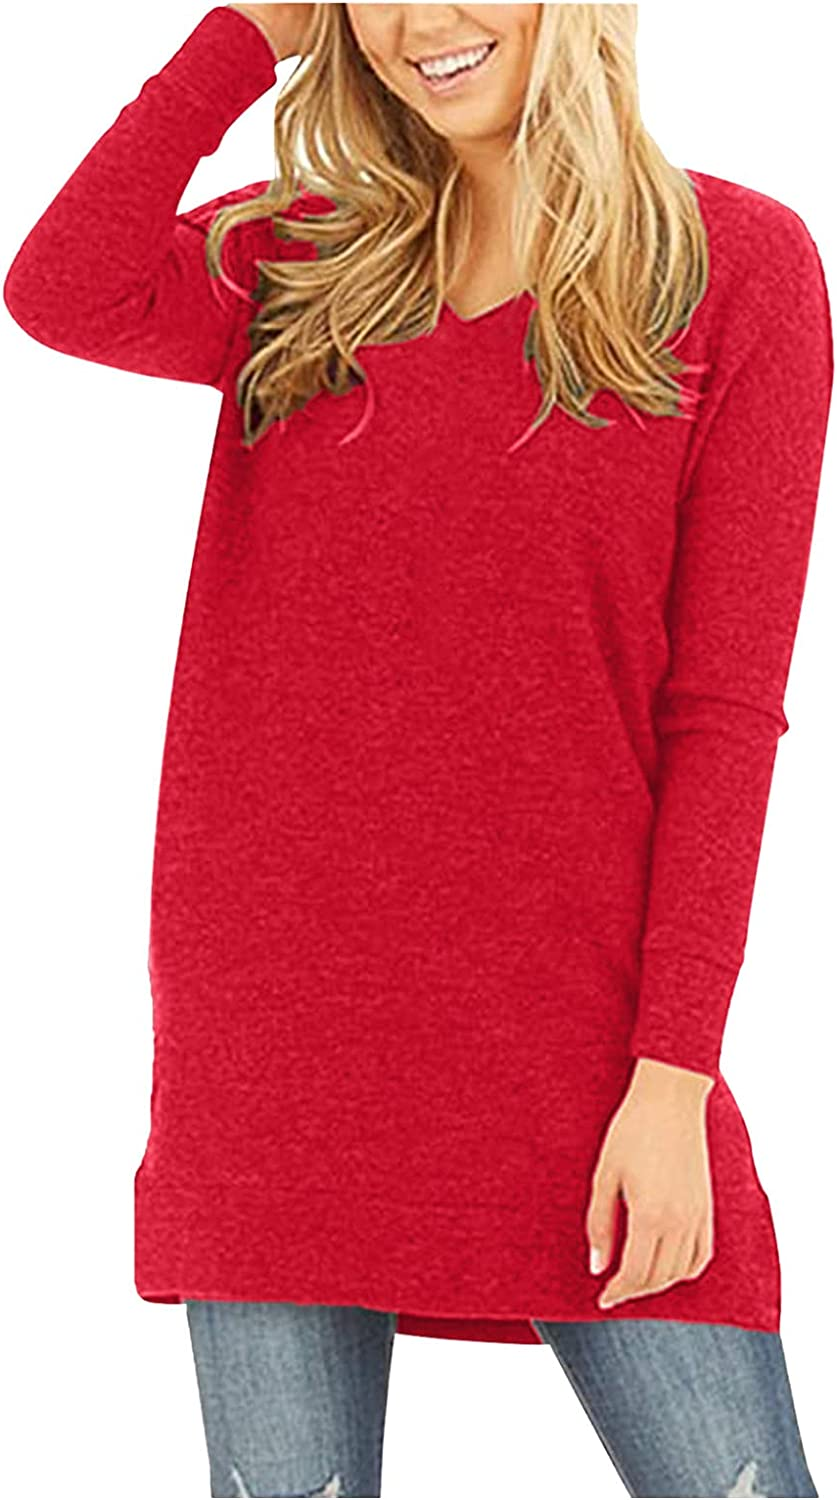 aihihe Womens Long Sleeve V Neck Tops Pullovers, 2021 Fall Tunics for Leggings Solid Color Causal T Shirts Tunic Blouses